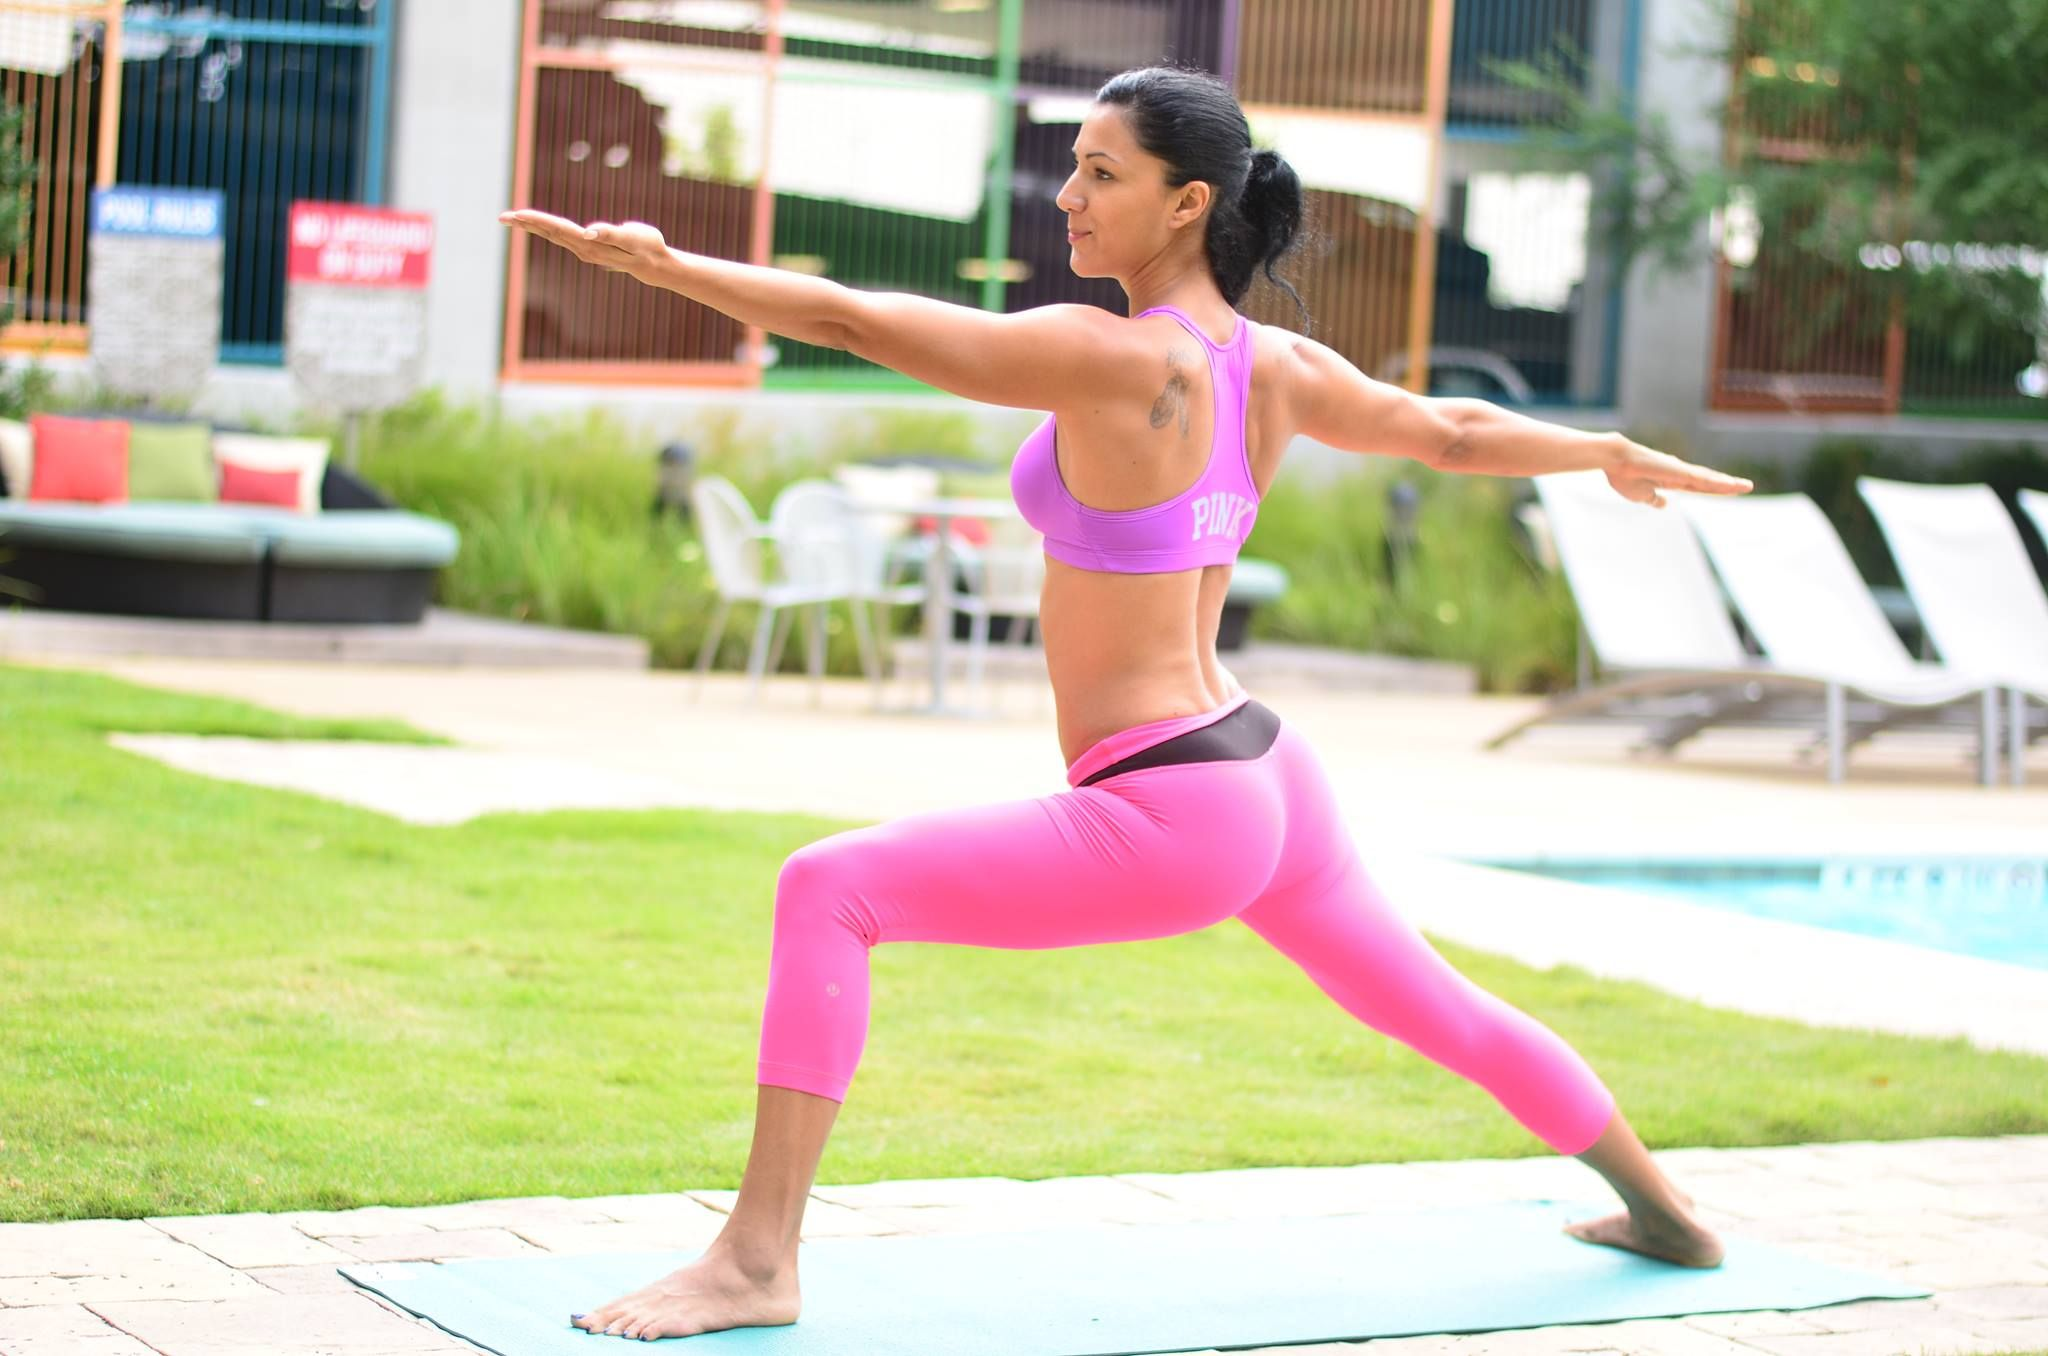 17+ Yoga exercises for actors ideas in 2021